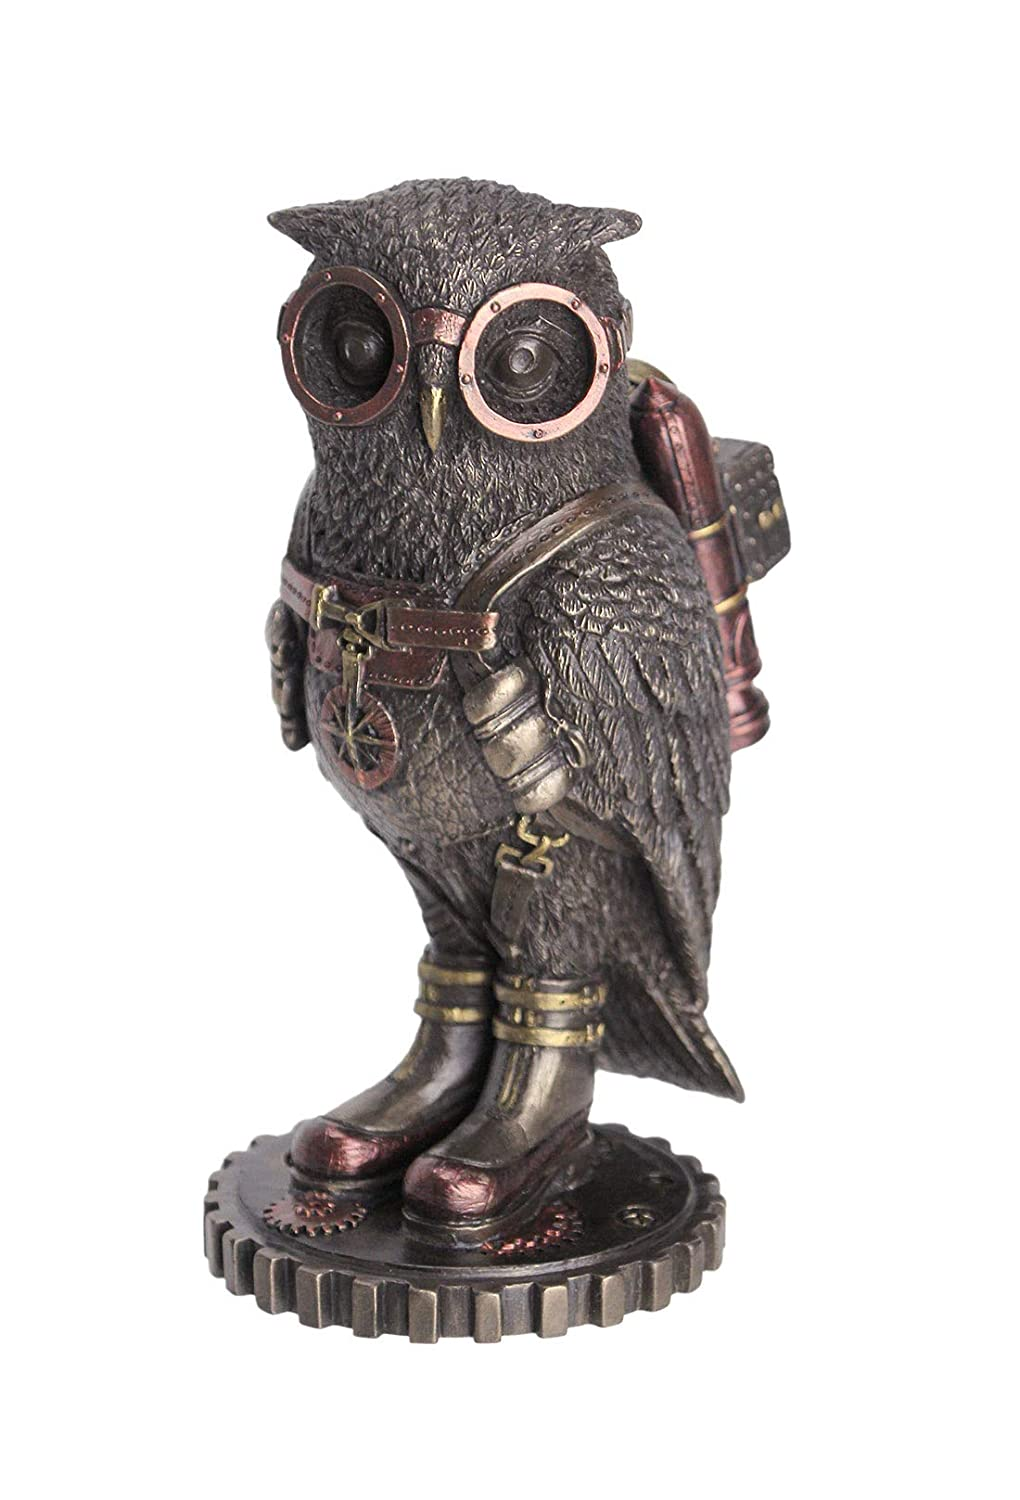 Steampunk Owl with Jetpack Statue On Gears Sculpture Figurine SHIPS IMMEDIATELY